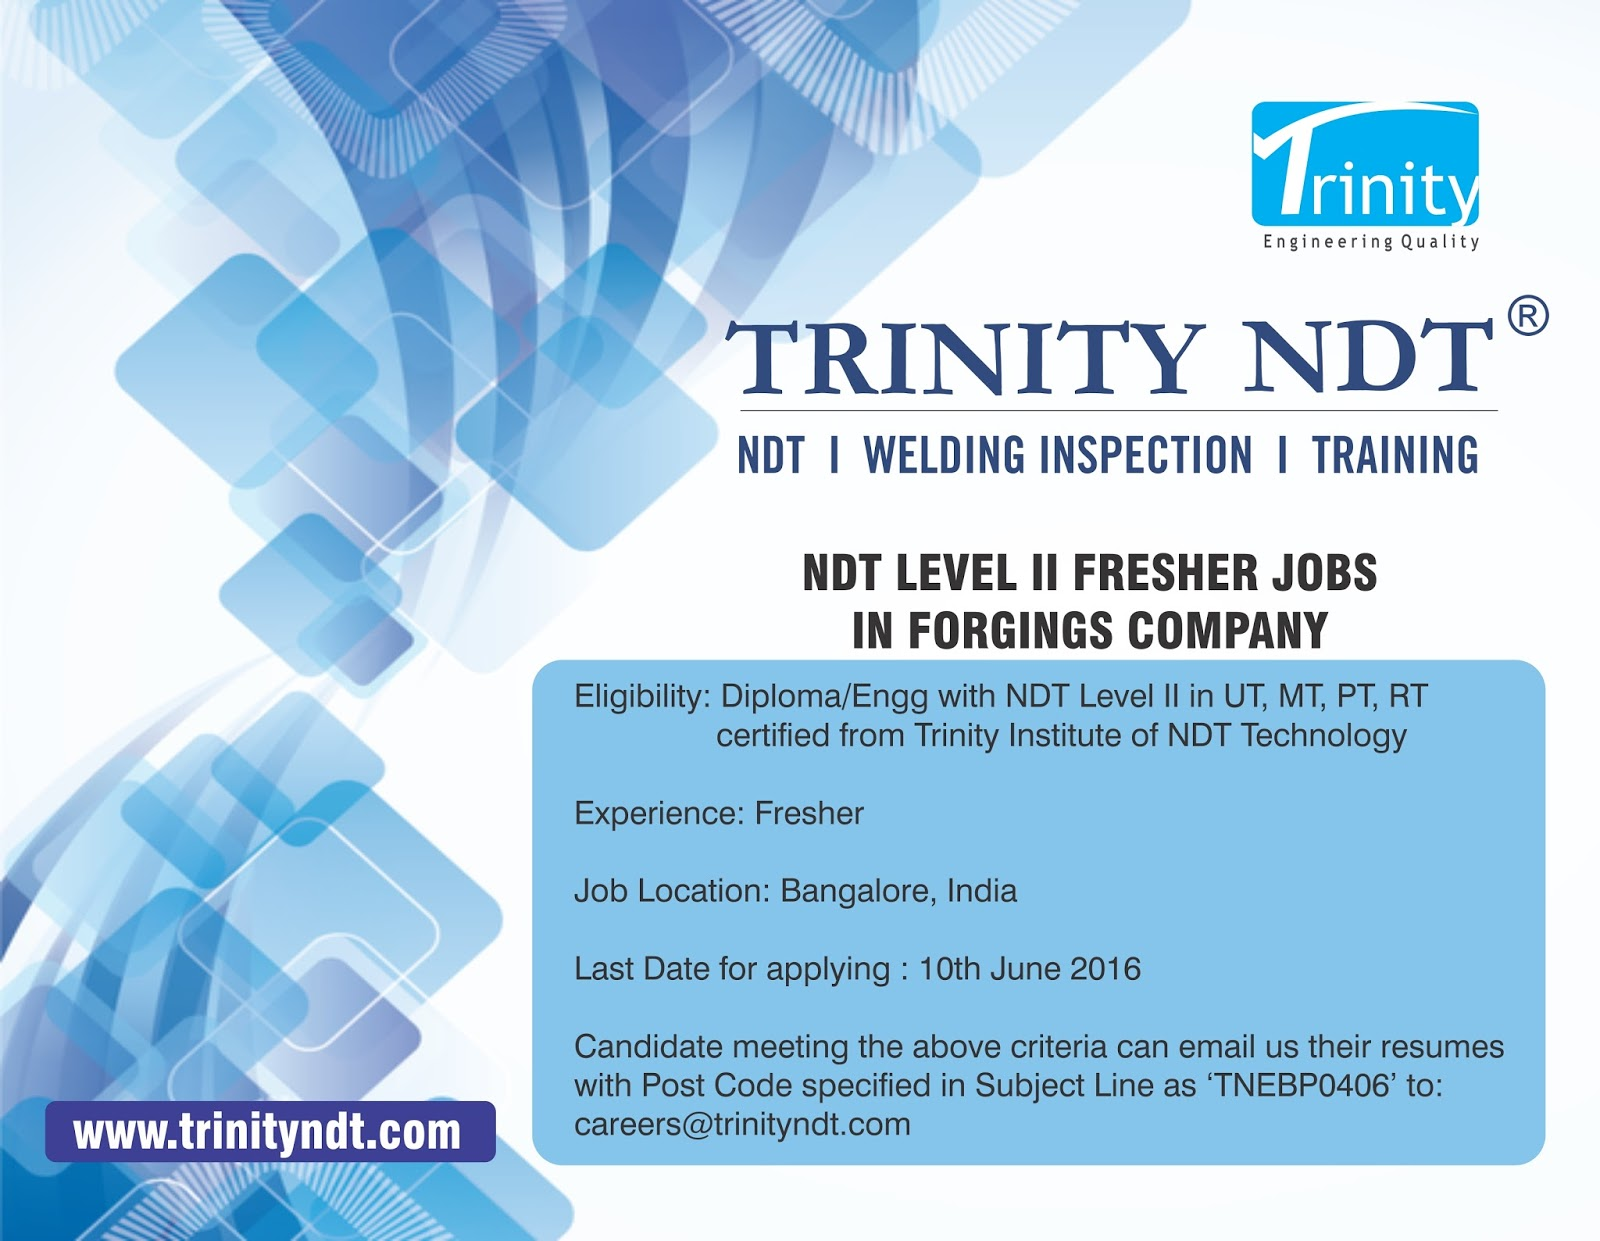 Nabl ndt labs ndt welding inspection training chennai mumbai ndt level ii 2 jobs fresher vacancies in a forgings company india xflitez Image collections